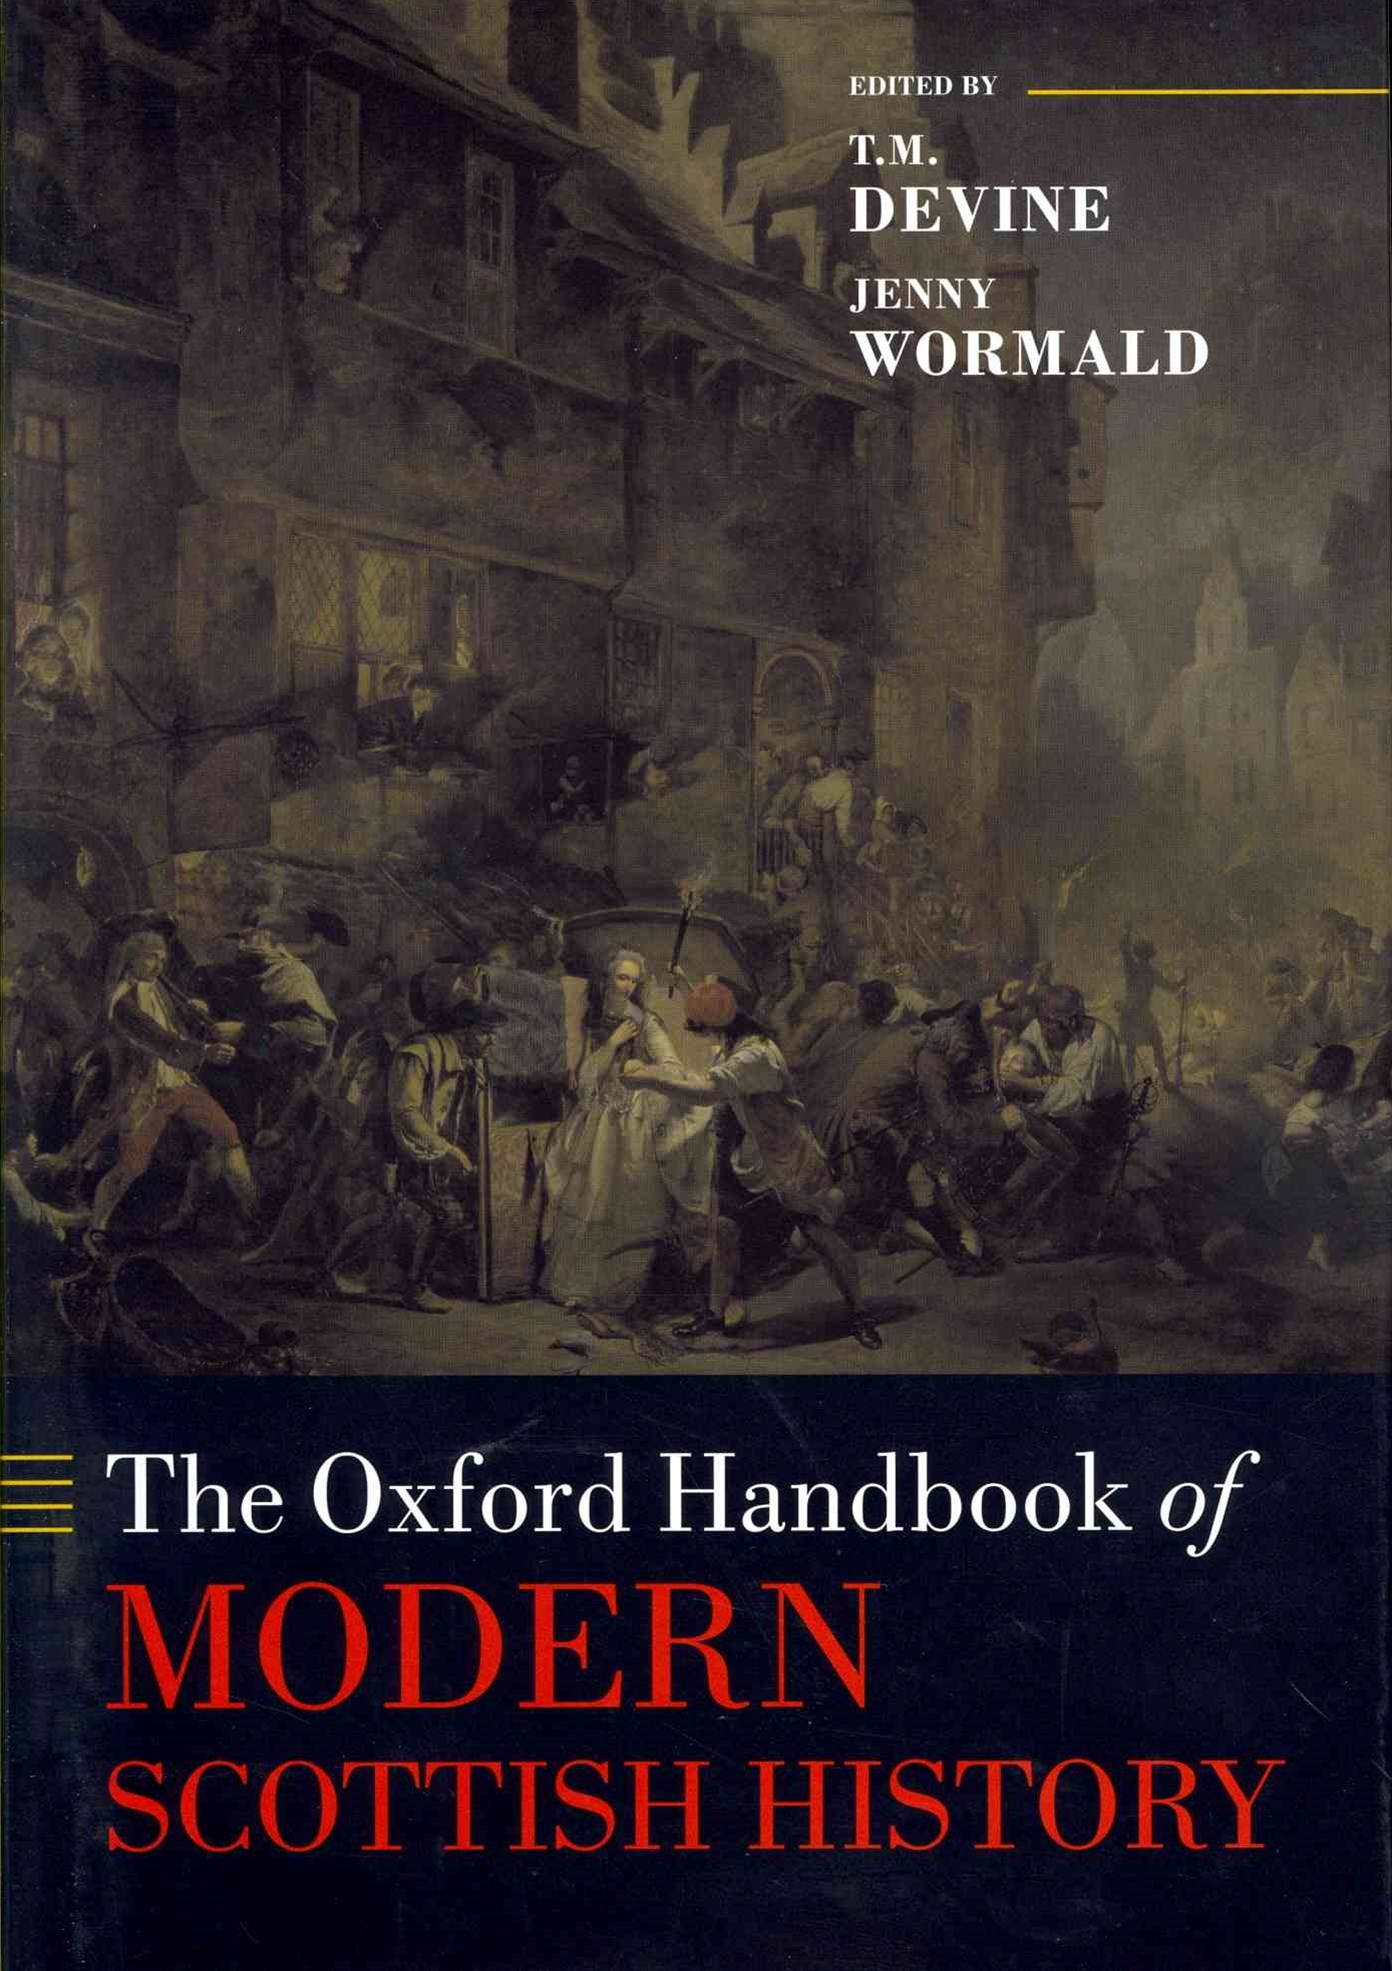 The Oxford Handbook of Modern Scottish History